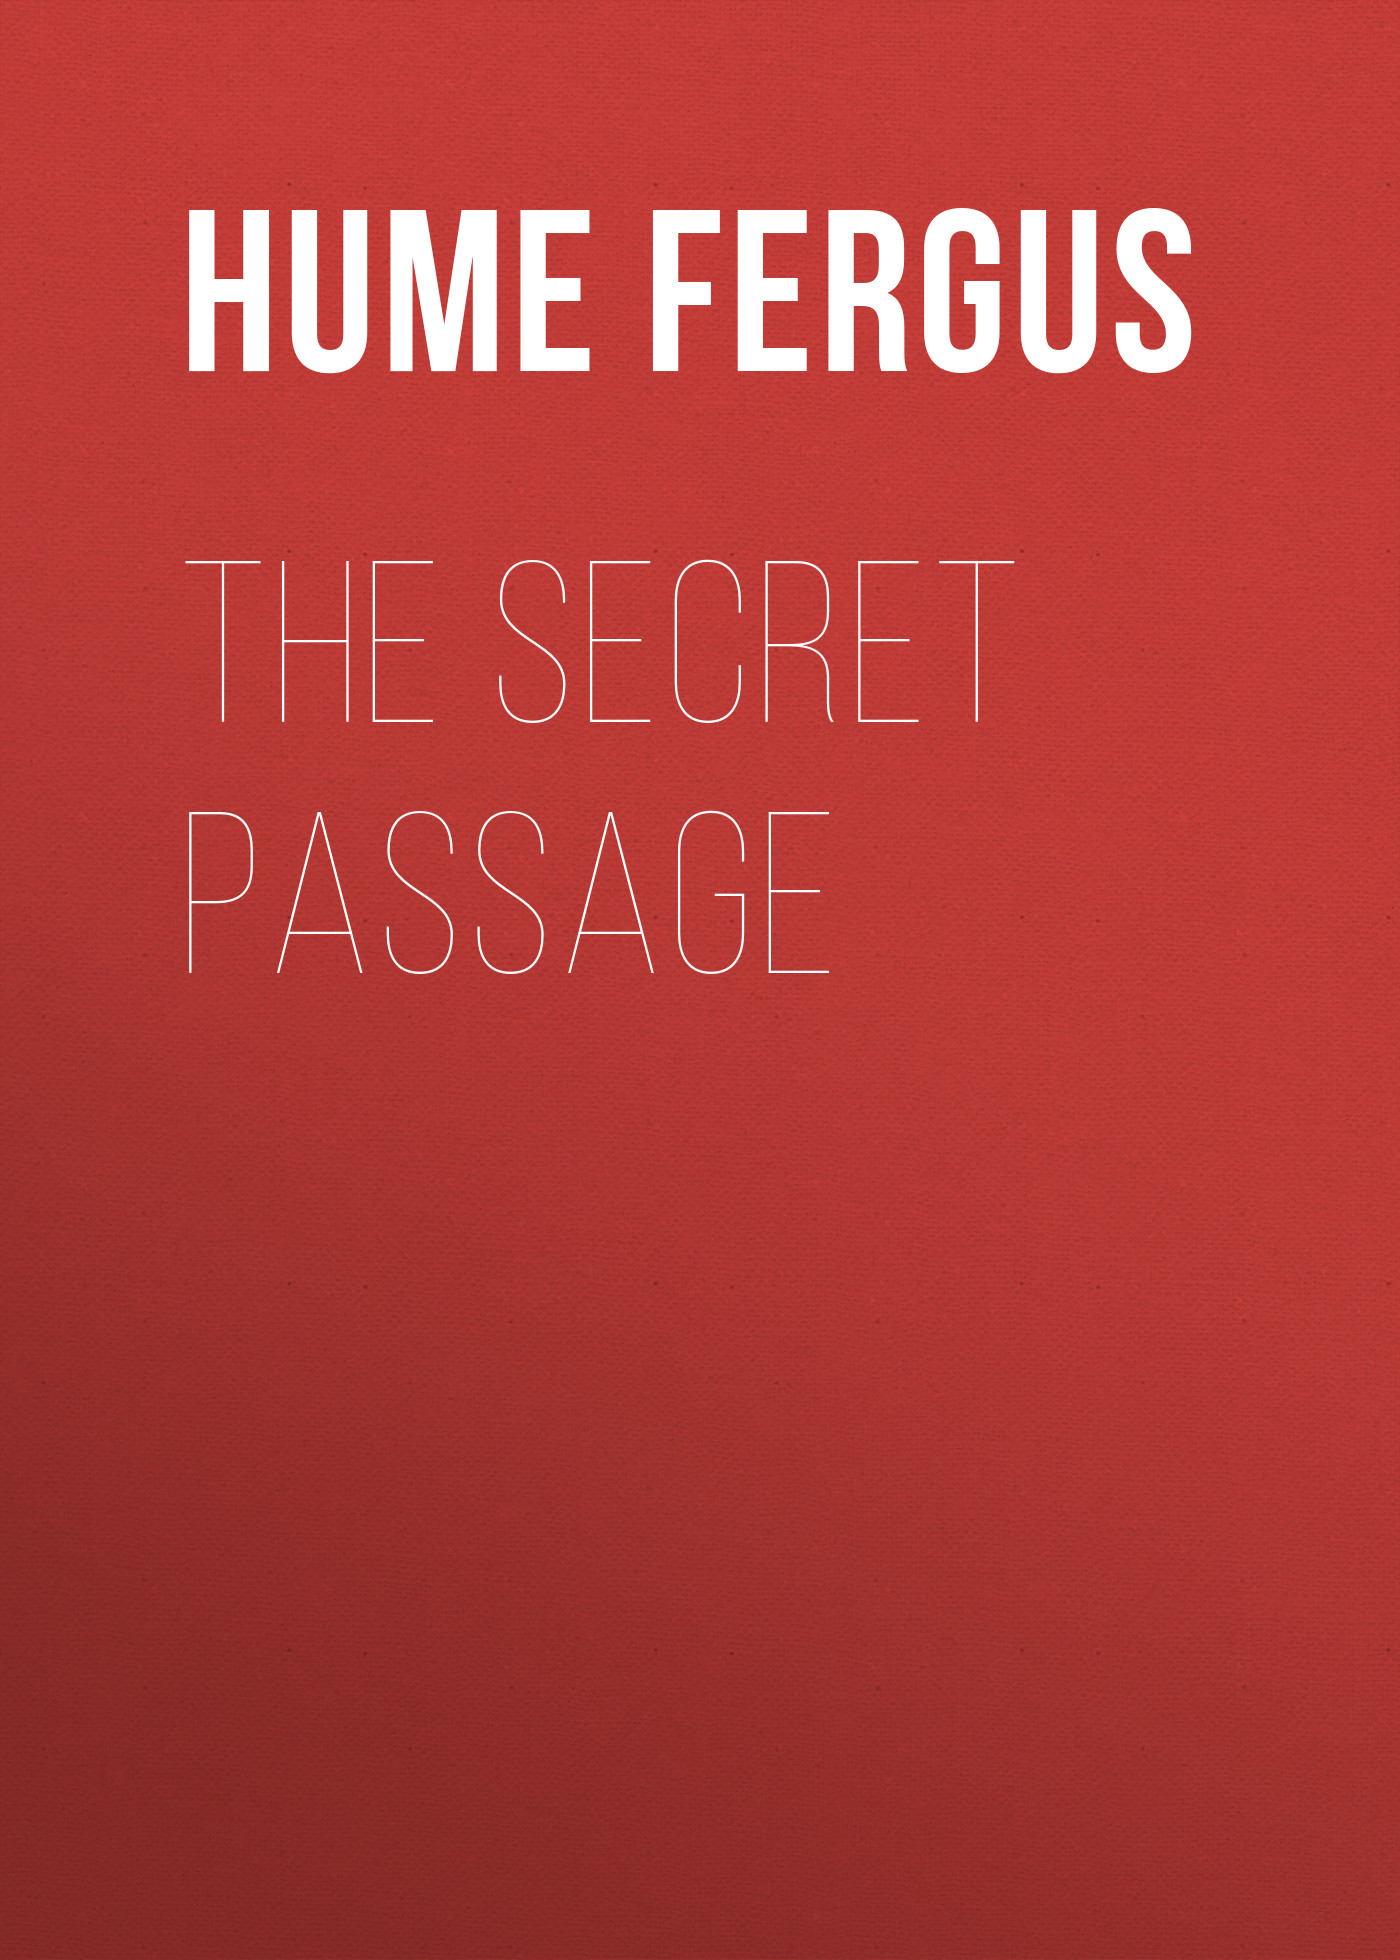 все цены на Hume Fergus The Secret Passage